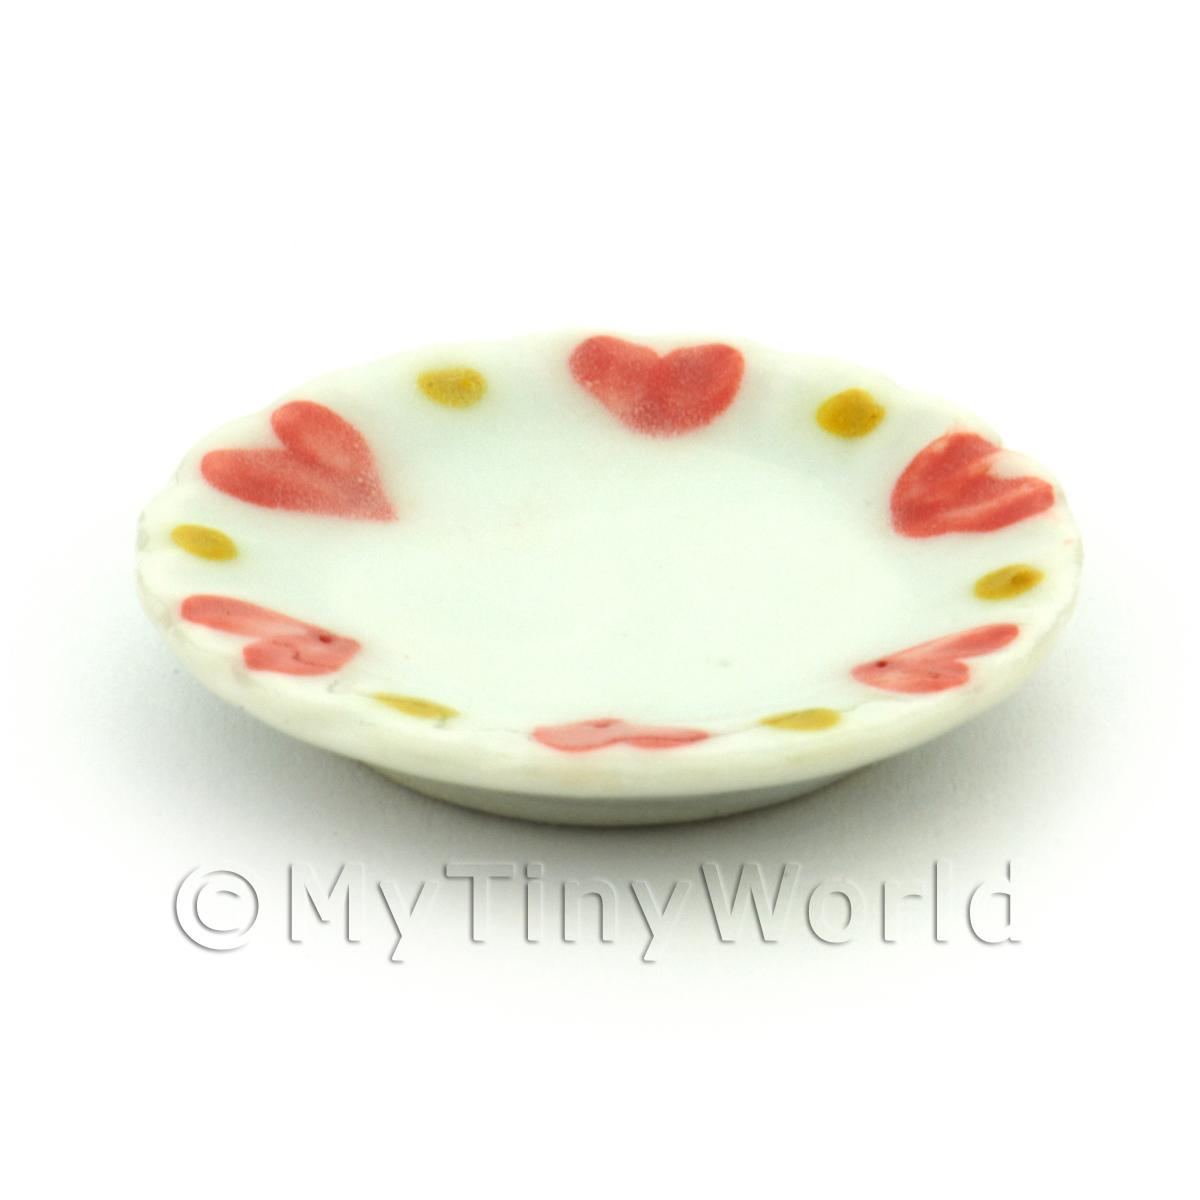 Dolls House Miniature Ceramic 25mm Plate With Heart Pattern